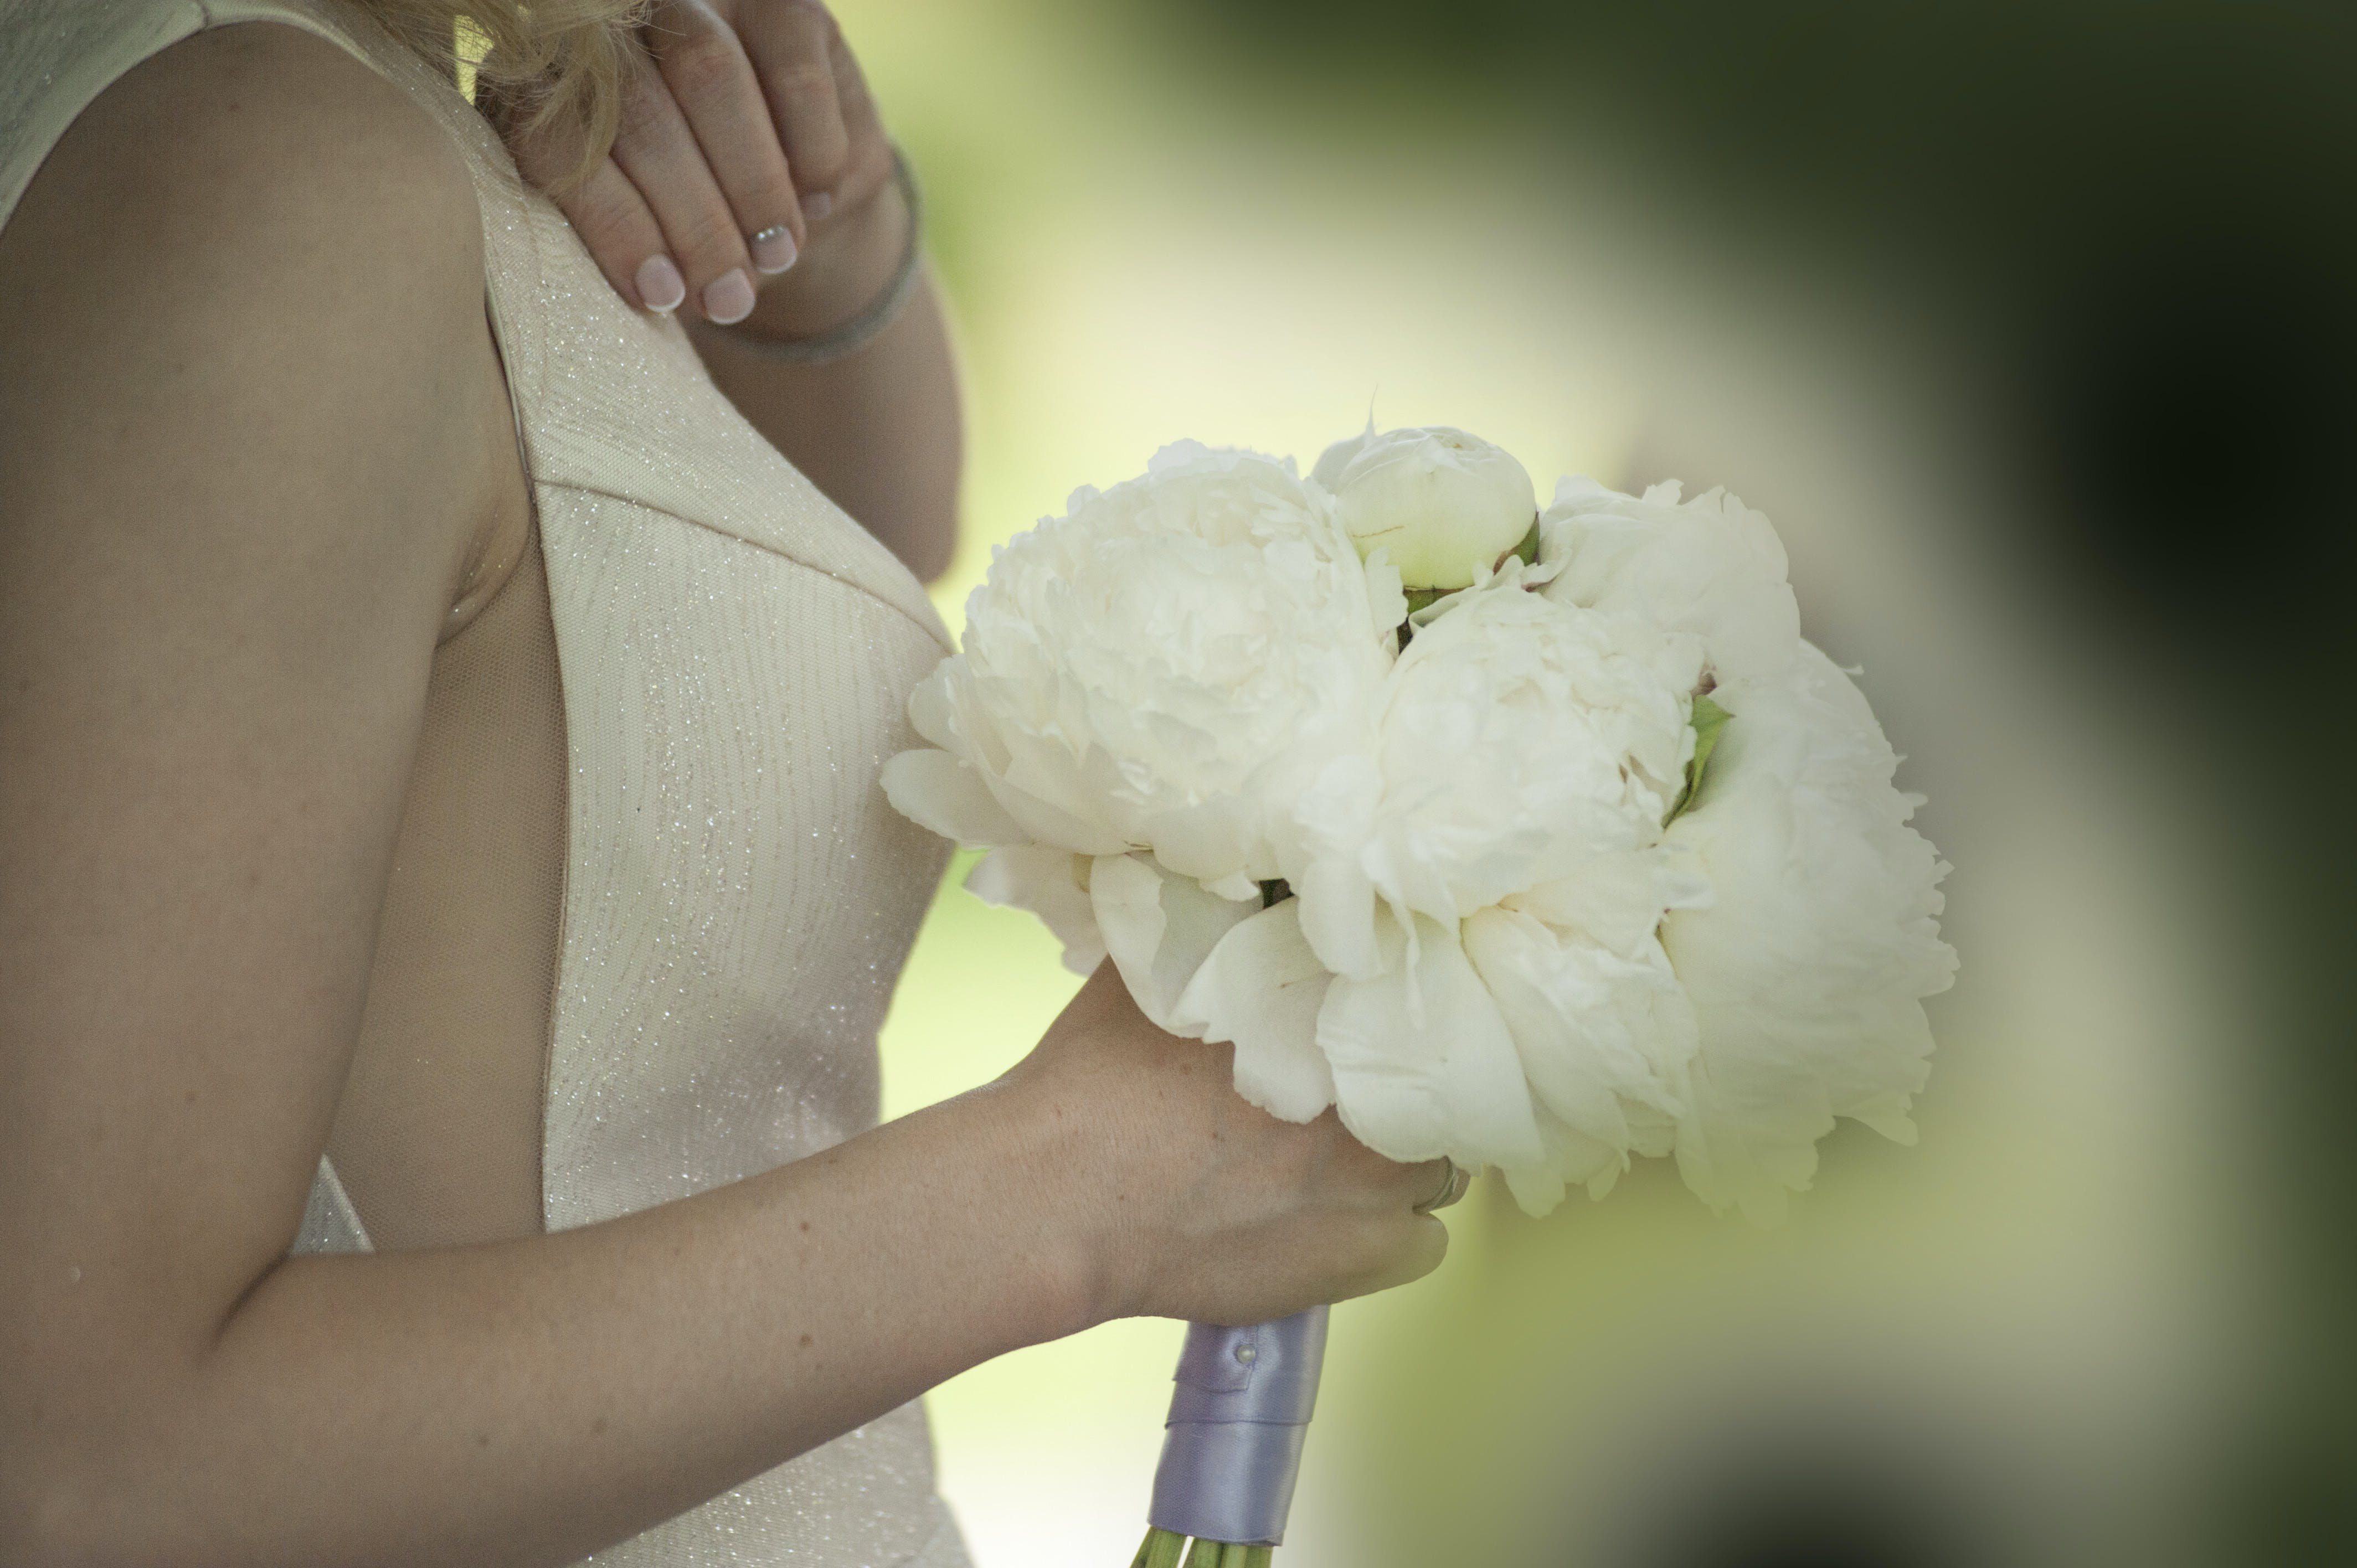 Woman Holding White Flower Bouquet